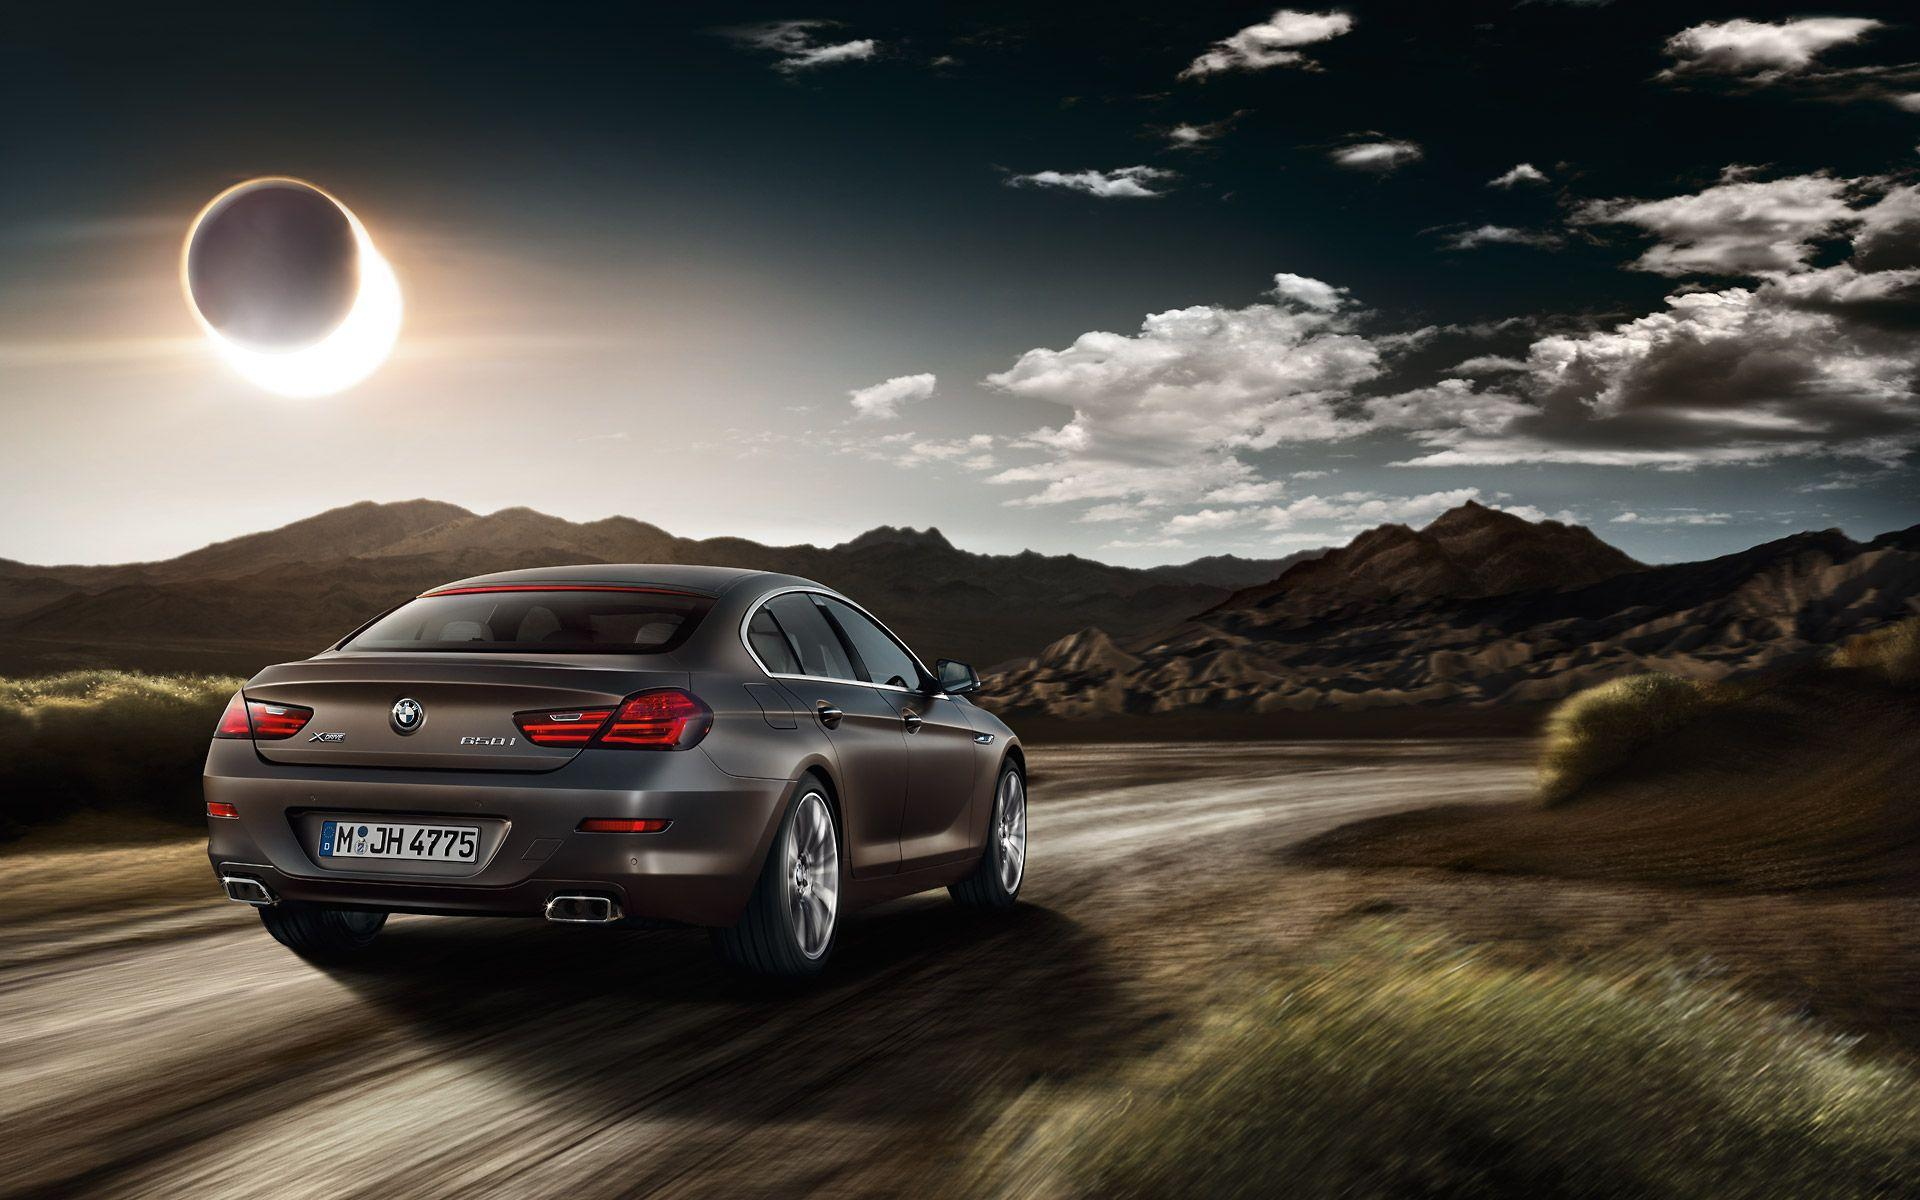 Wallpapers: BMW 6 Series Gran Coupe